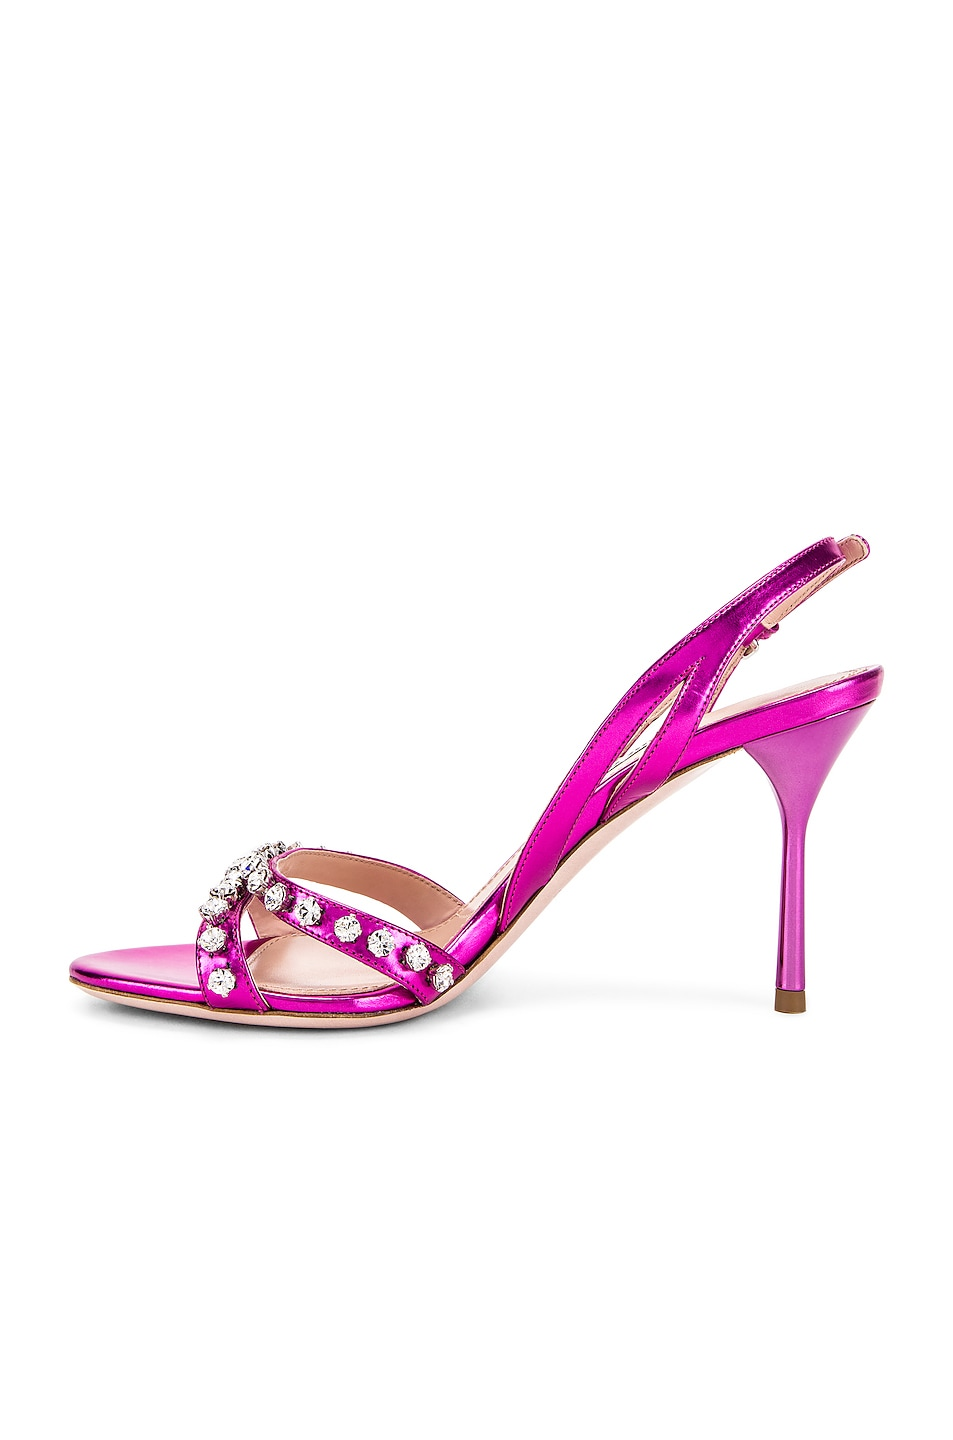 Image 5 of Miu Miu Jeweled Slingback Sandals in Fuchsia